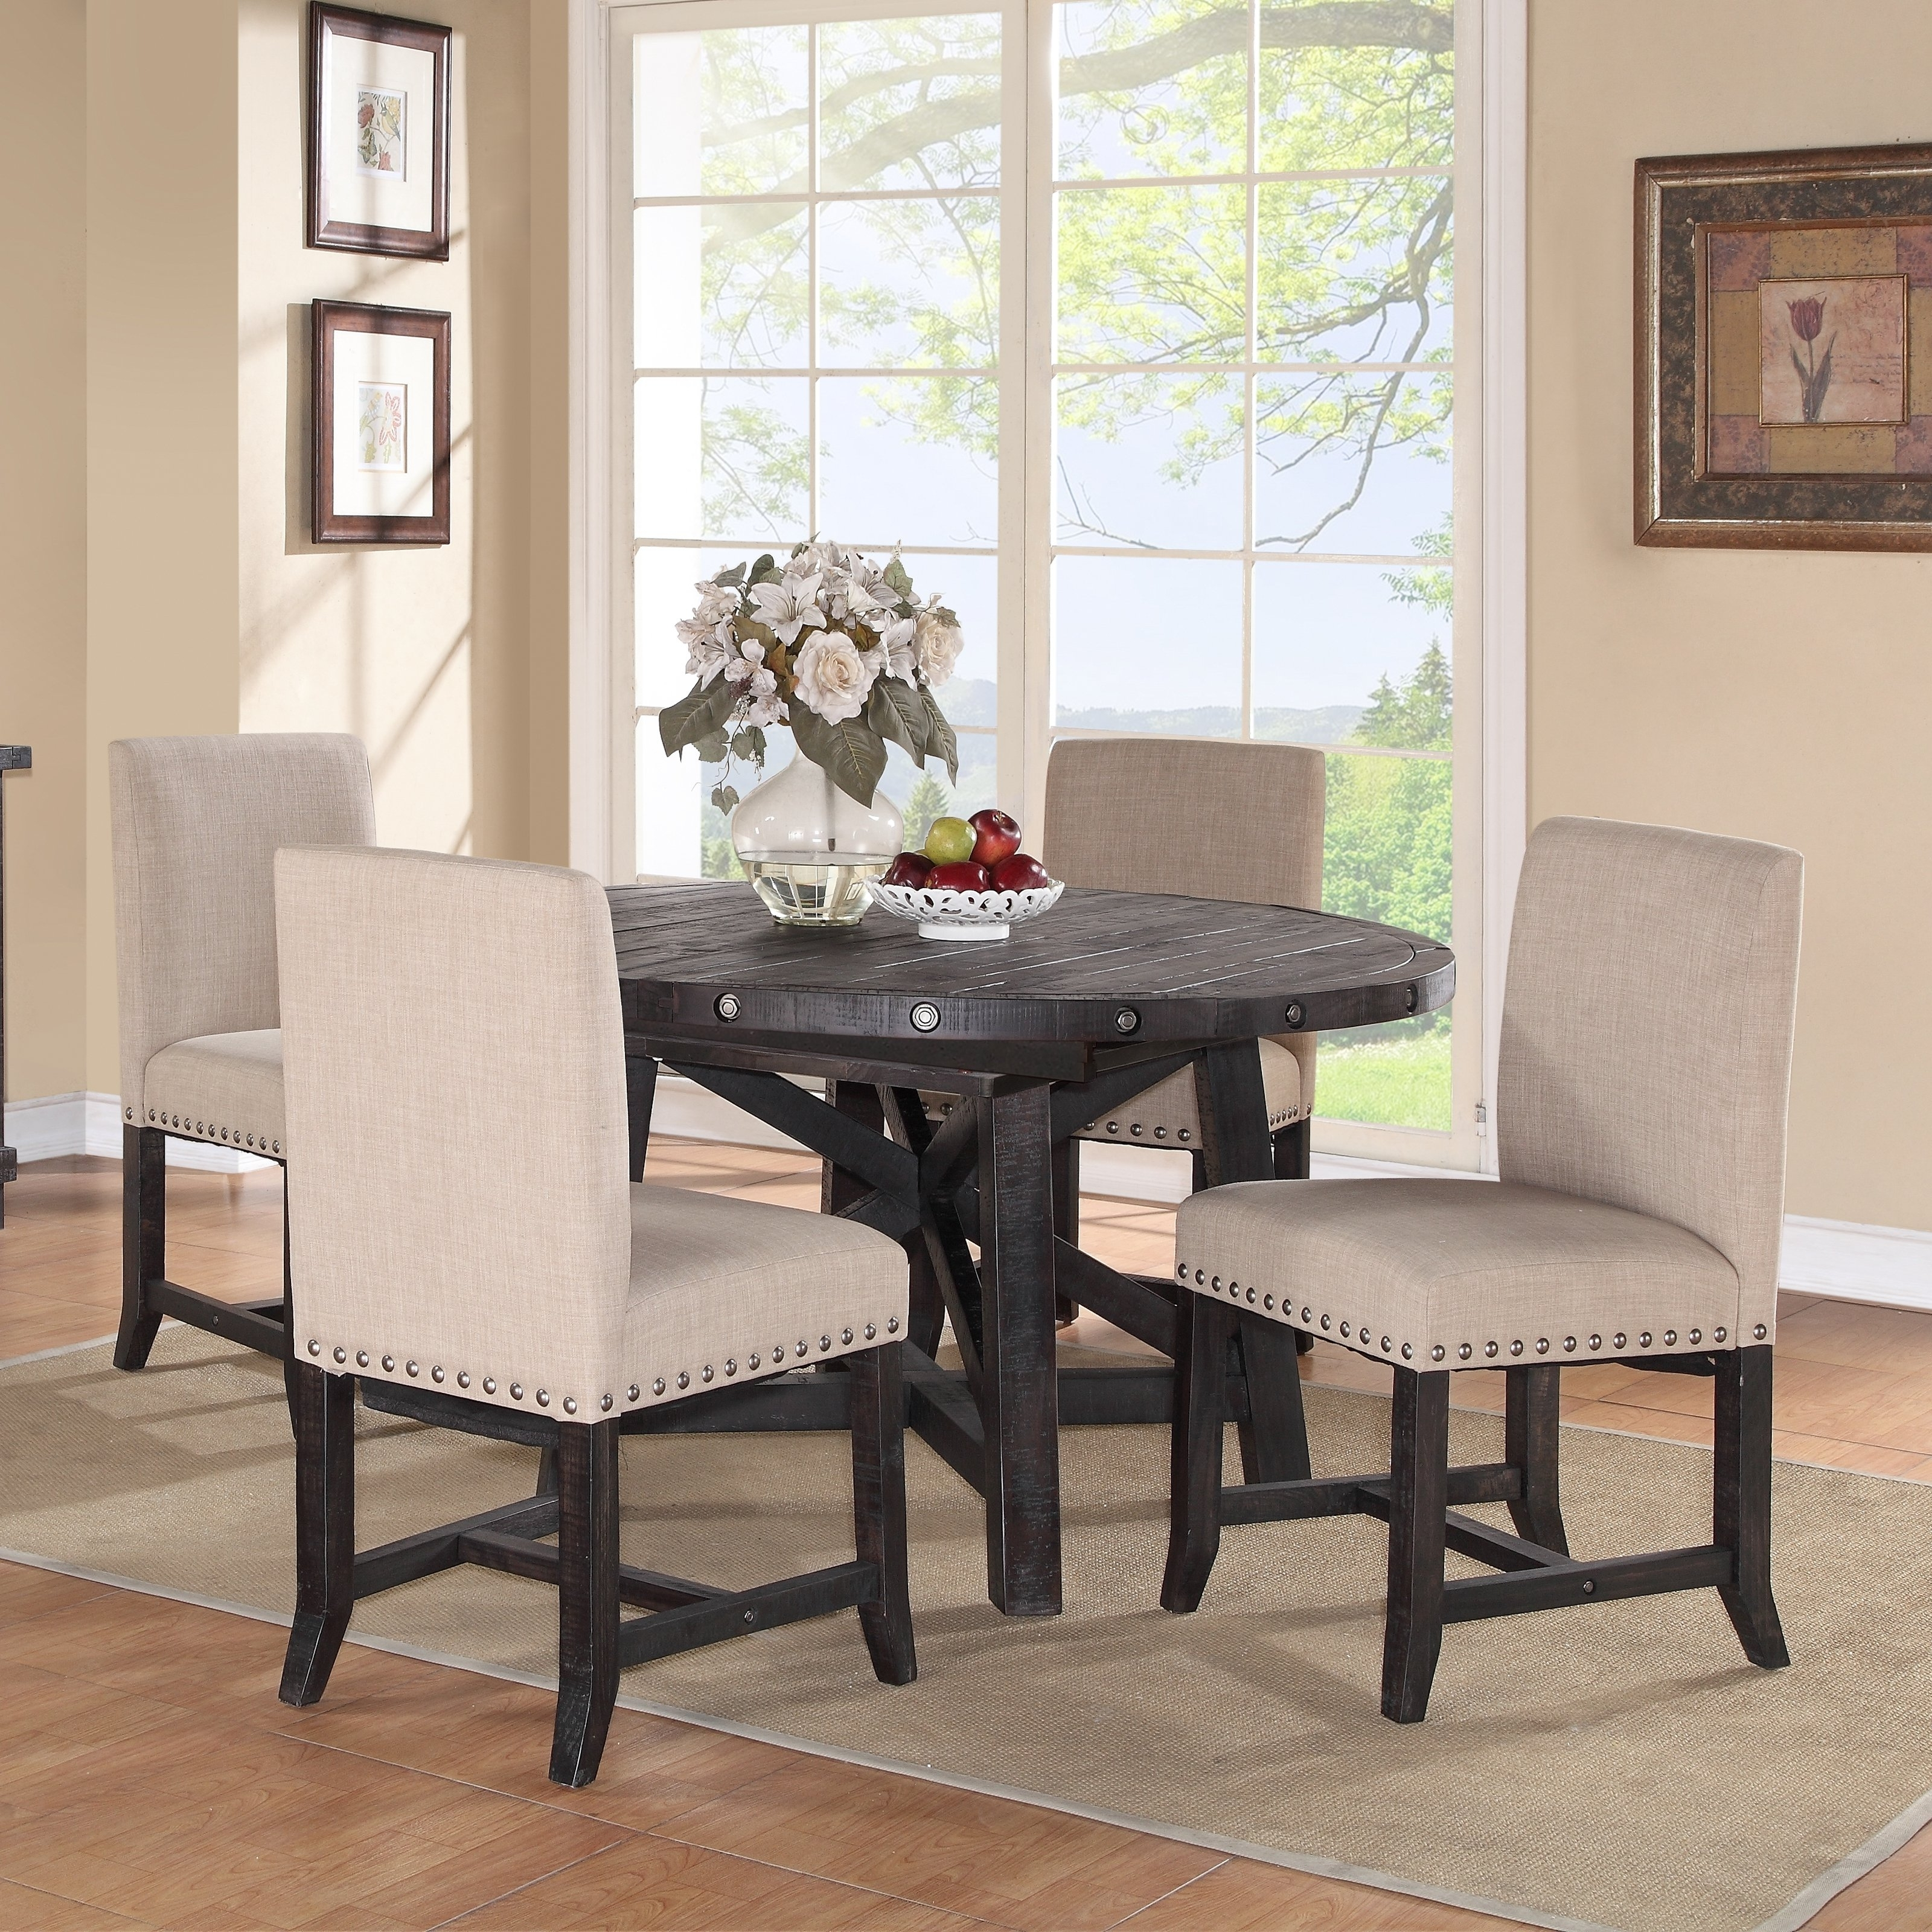 Dining Tables Ideas Throughout Recent Jaxon 7 Piece Rectangle Dining Sets With Upholstered Chairs (View 17 of 25)